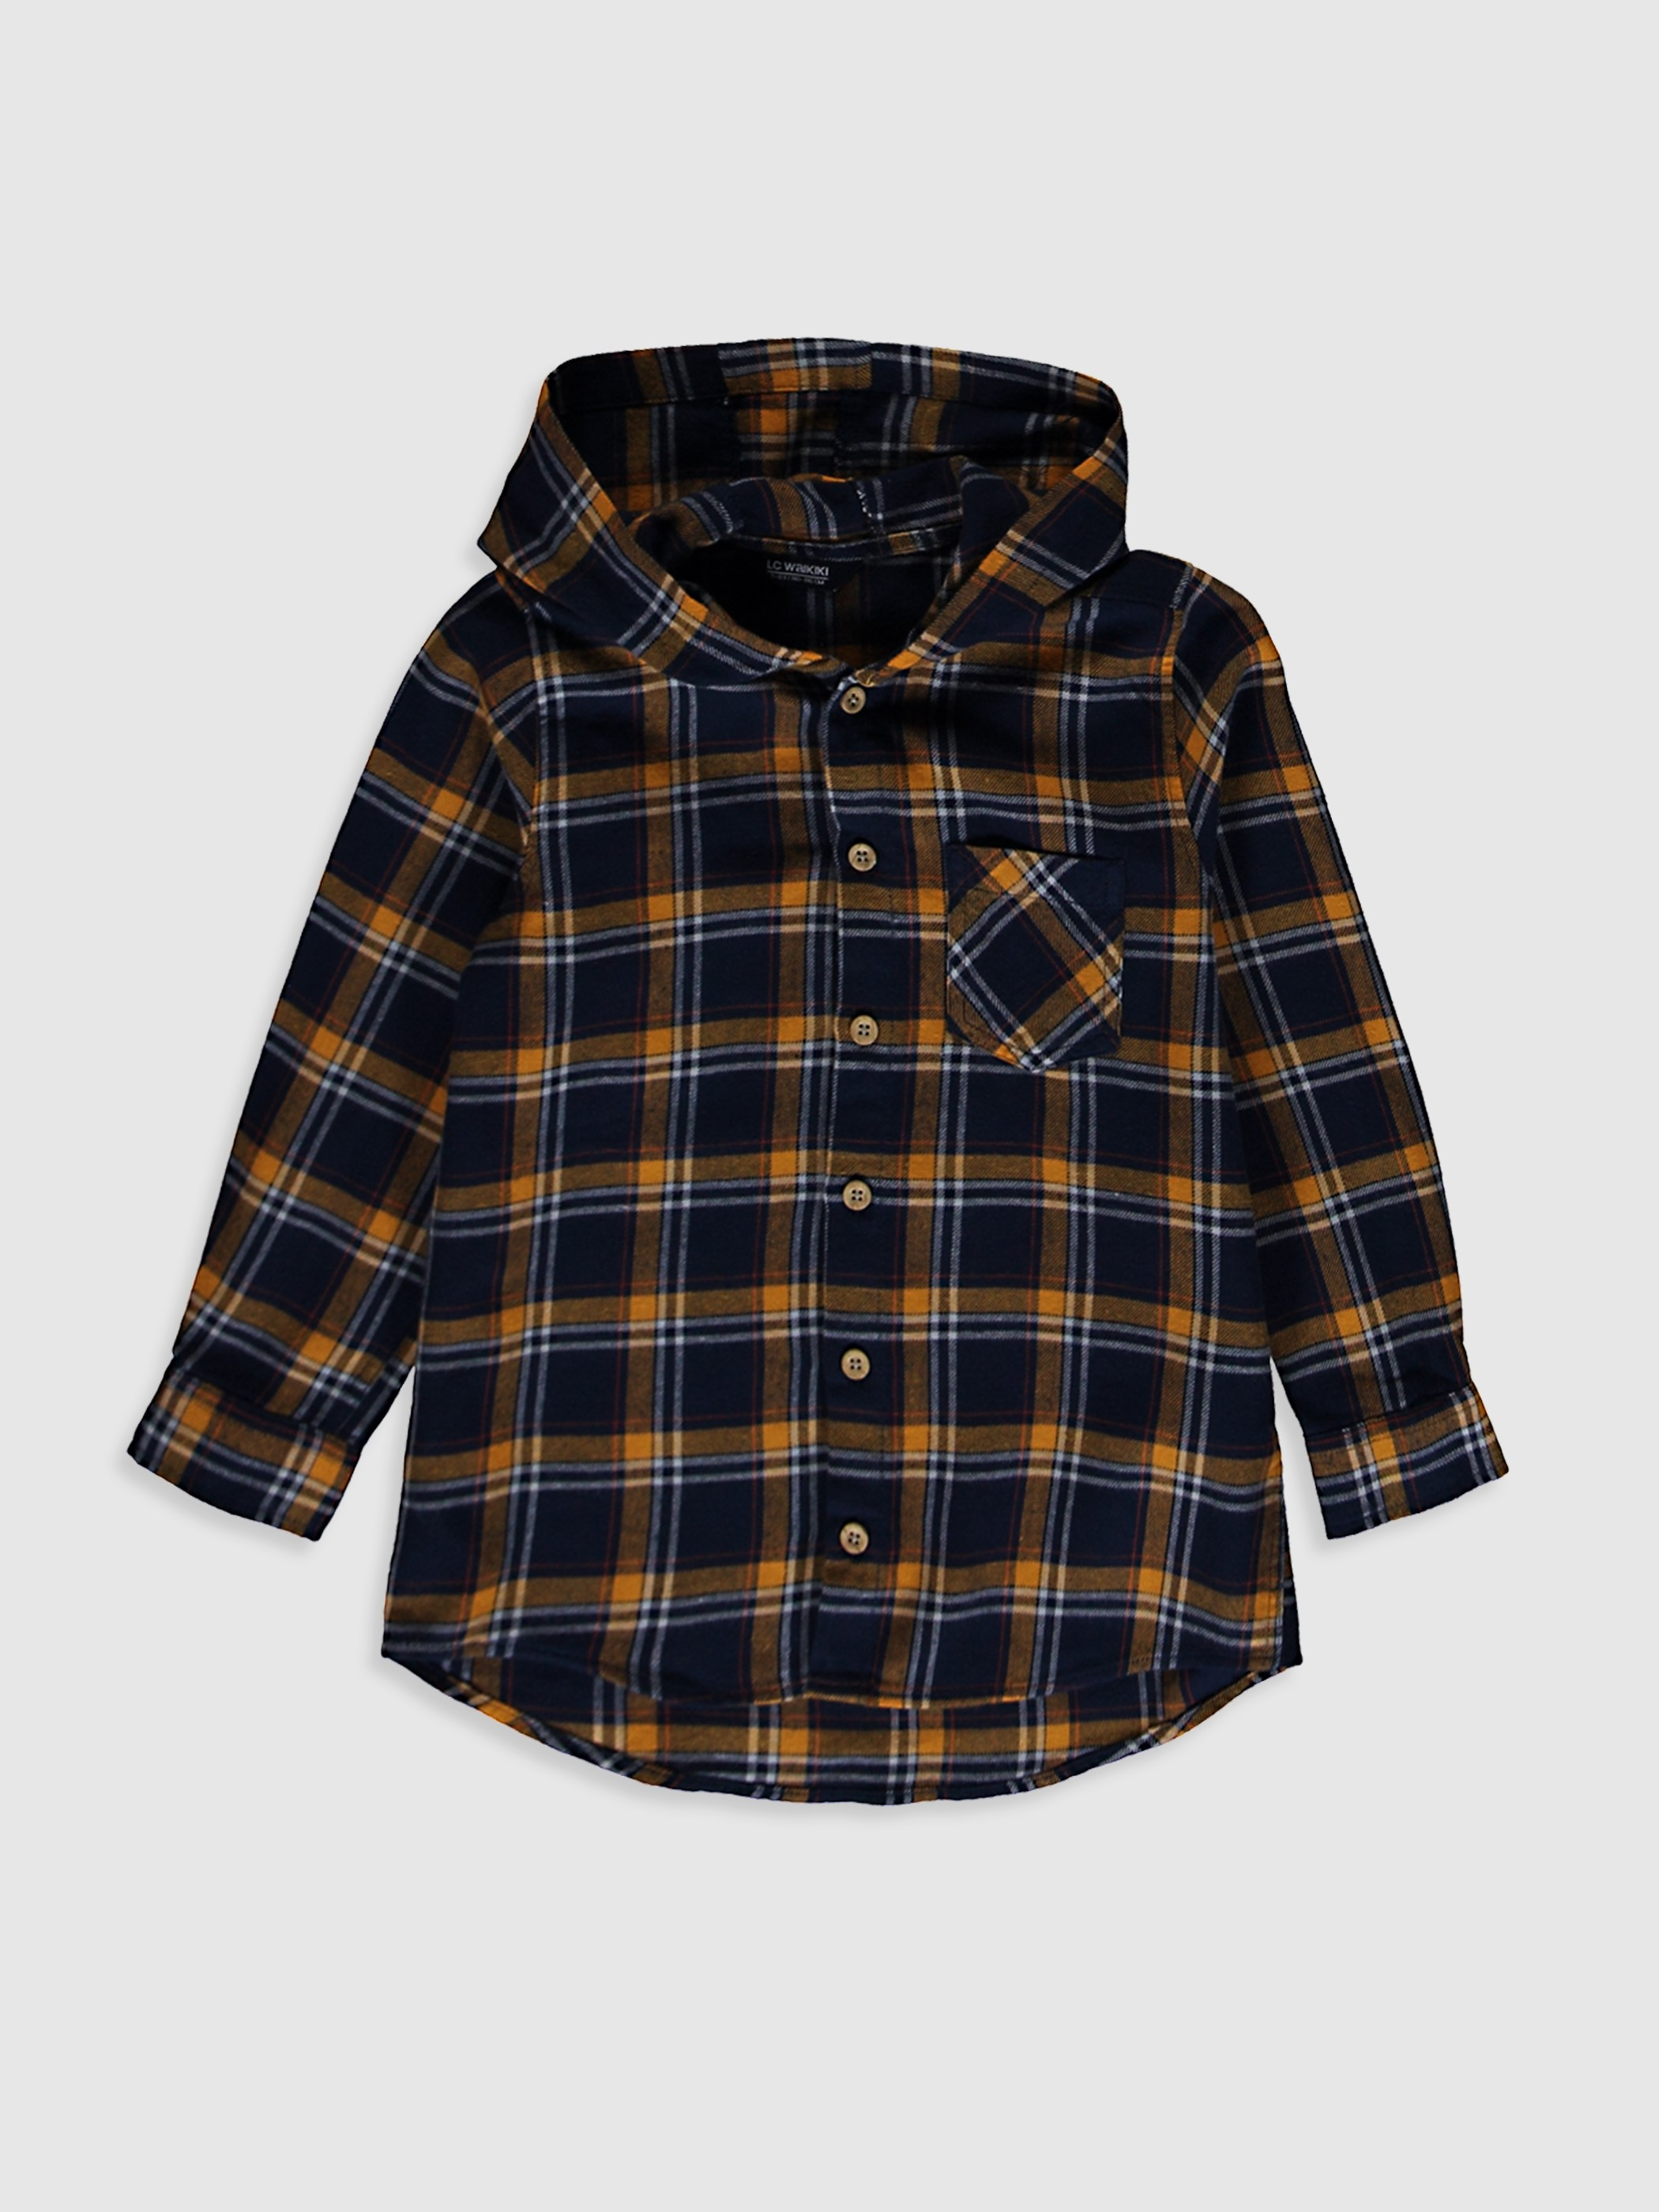 NAVY - Boy's Chequered Shirt with Hood - 0WG866Z4